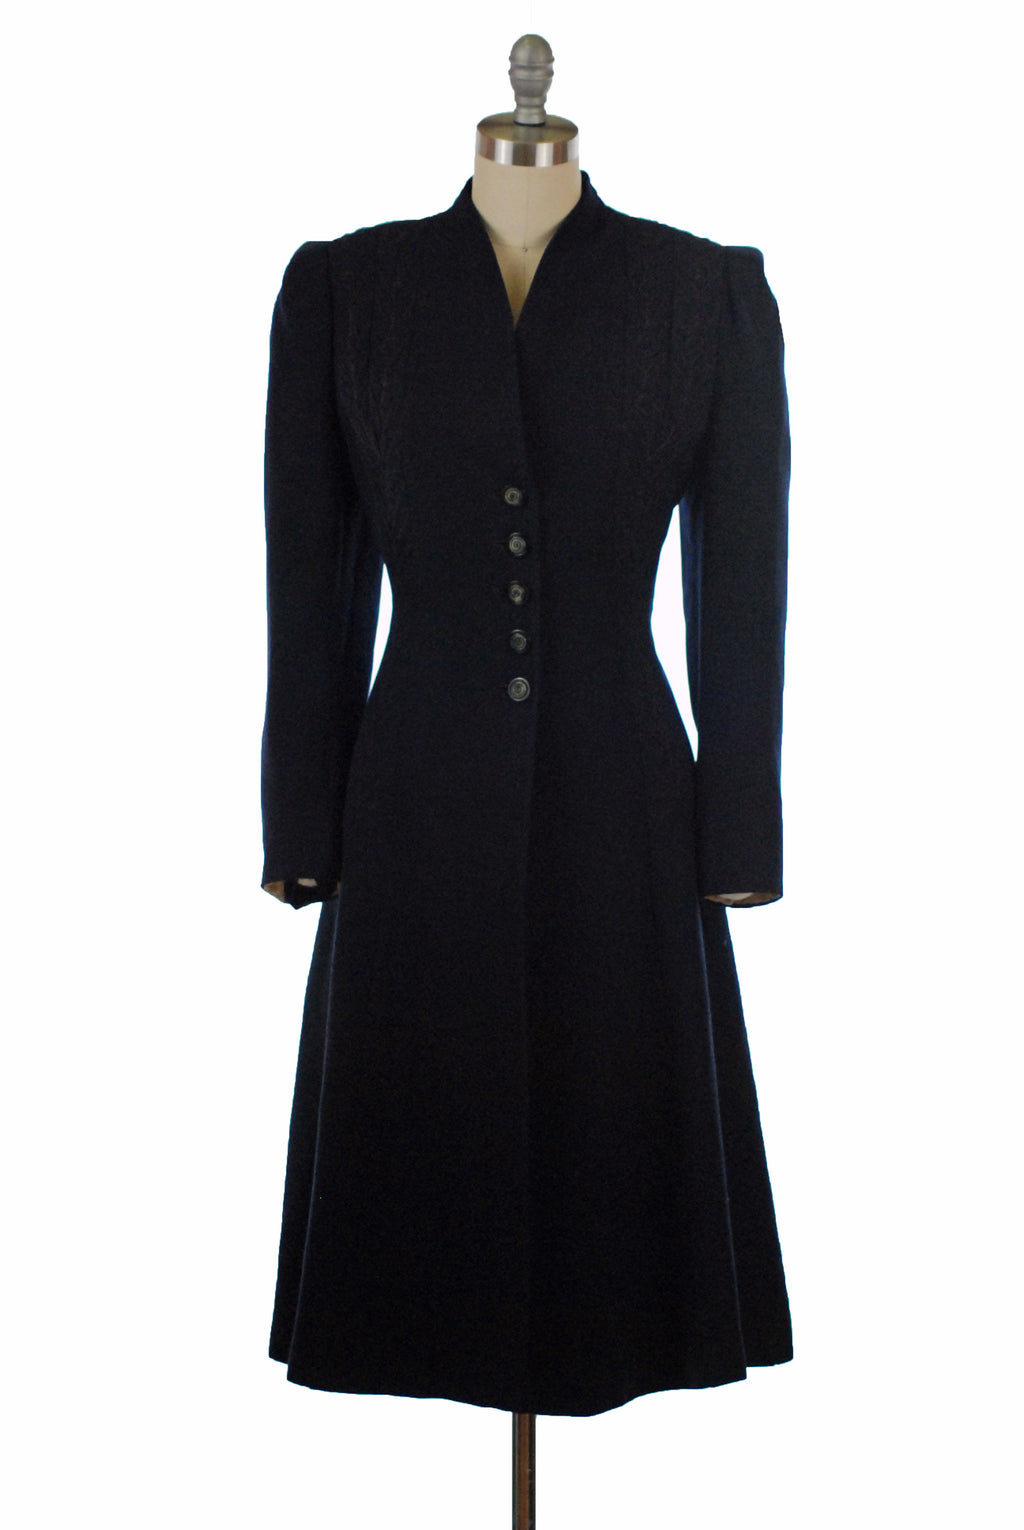 Gorgeous 1940s Navy Blue Spring Weight Princess Coat with Trapunto